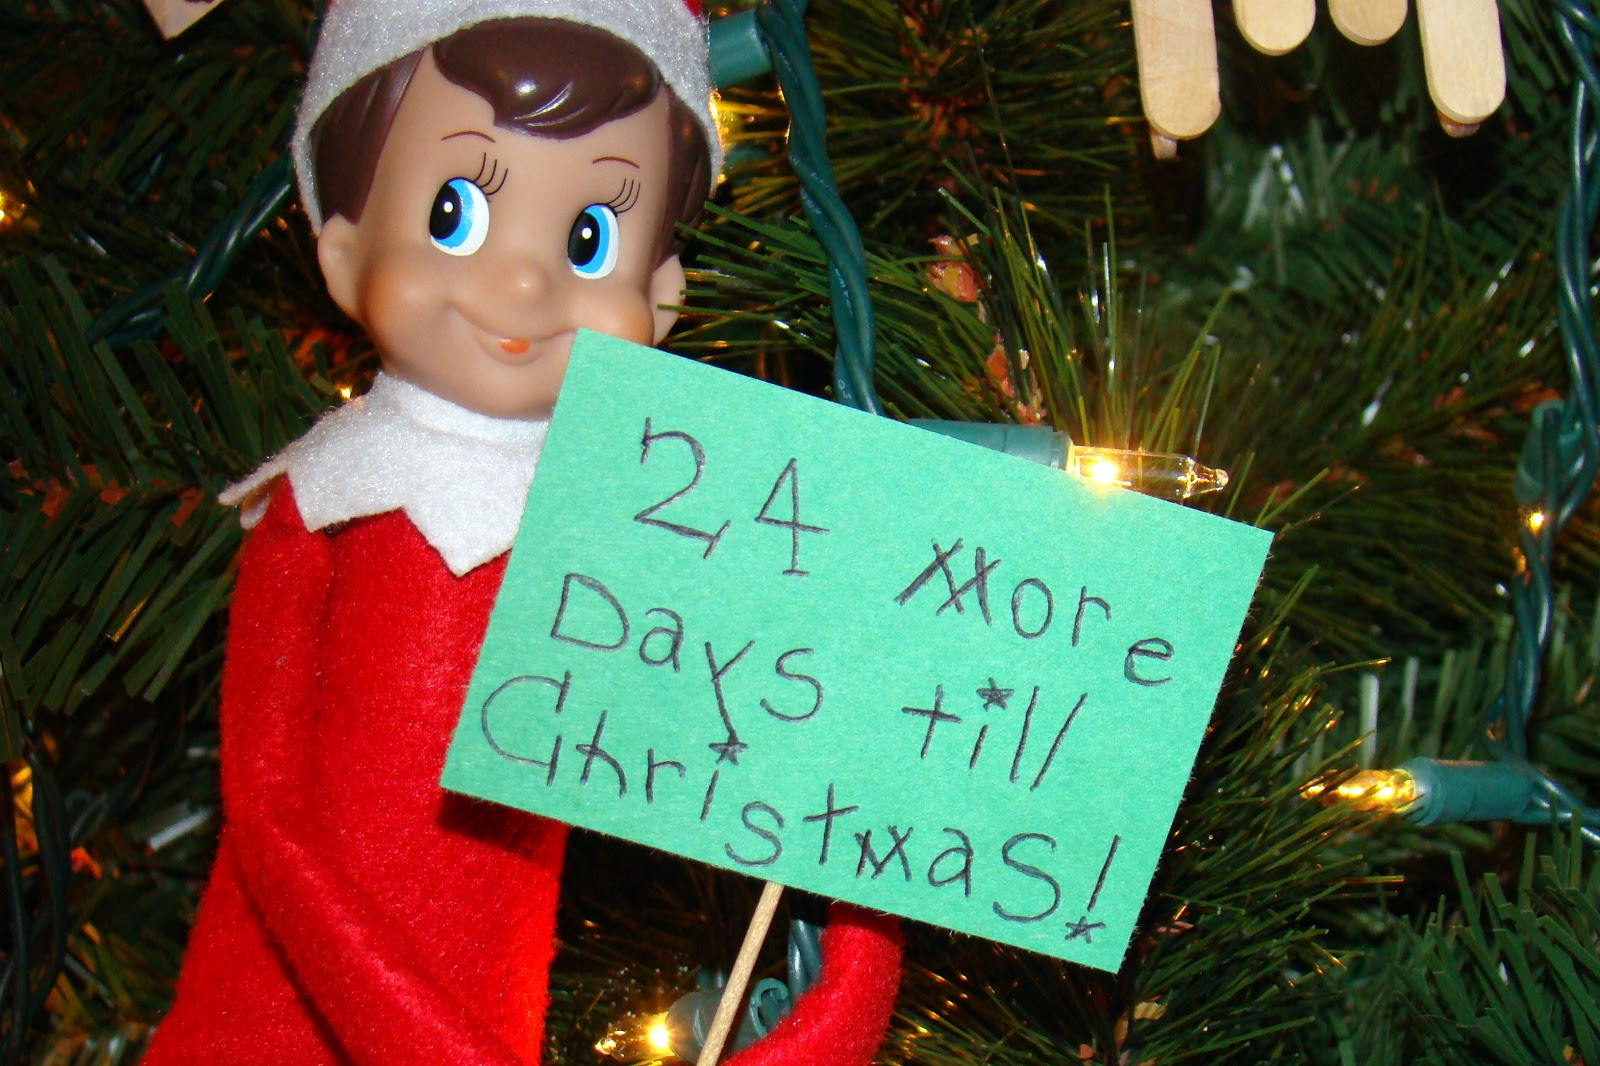 Sitting At Our Kitchen Table: Elf in Our Tree